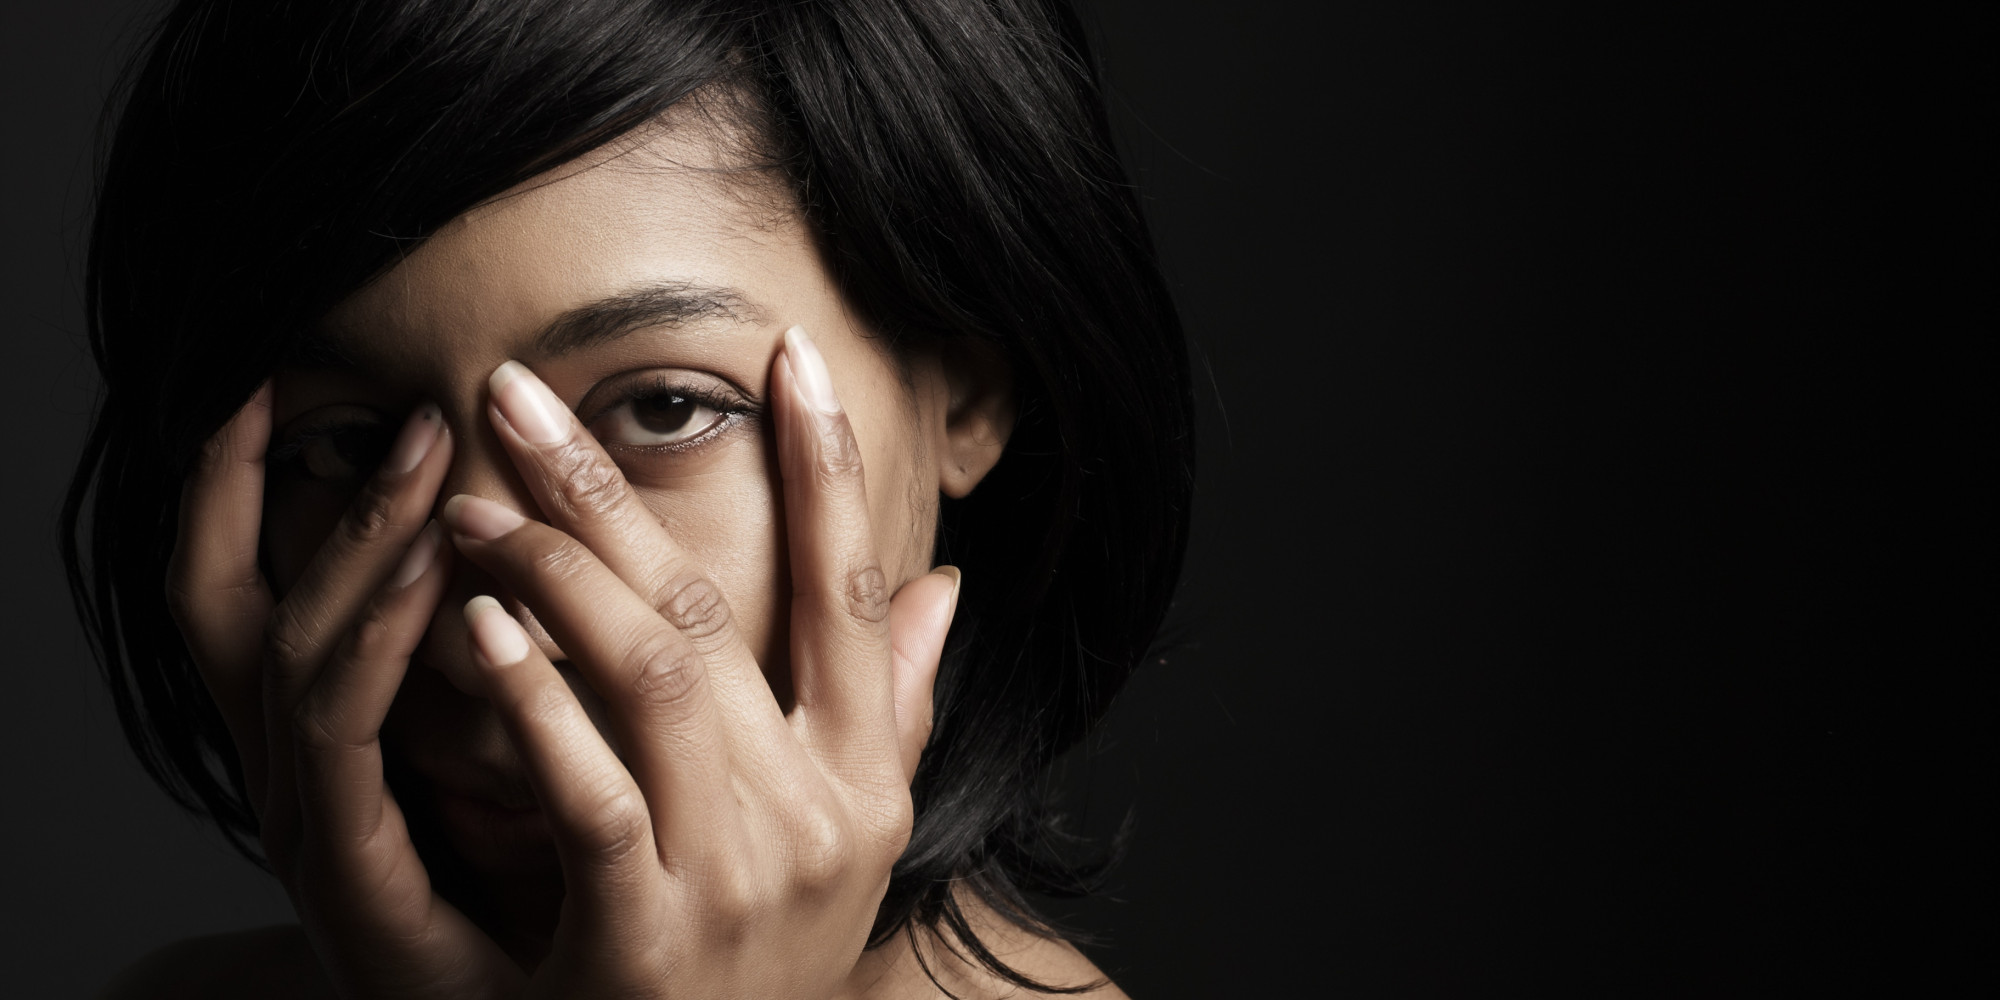 African American woman looking through her hands.